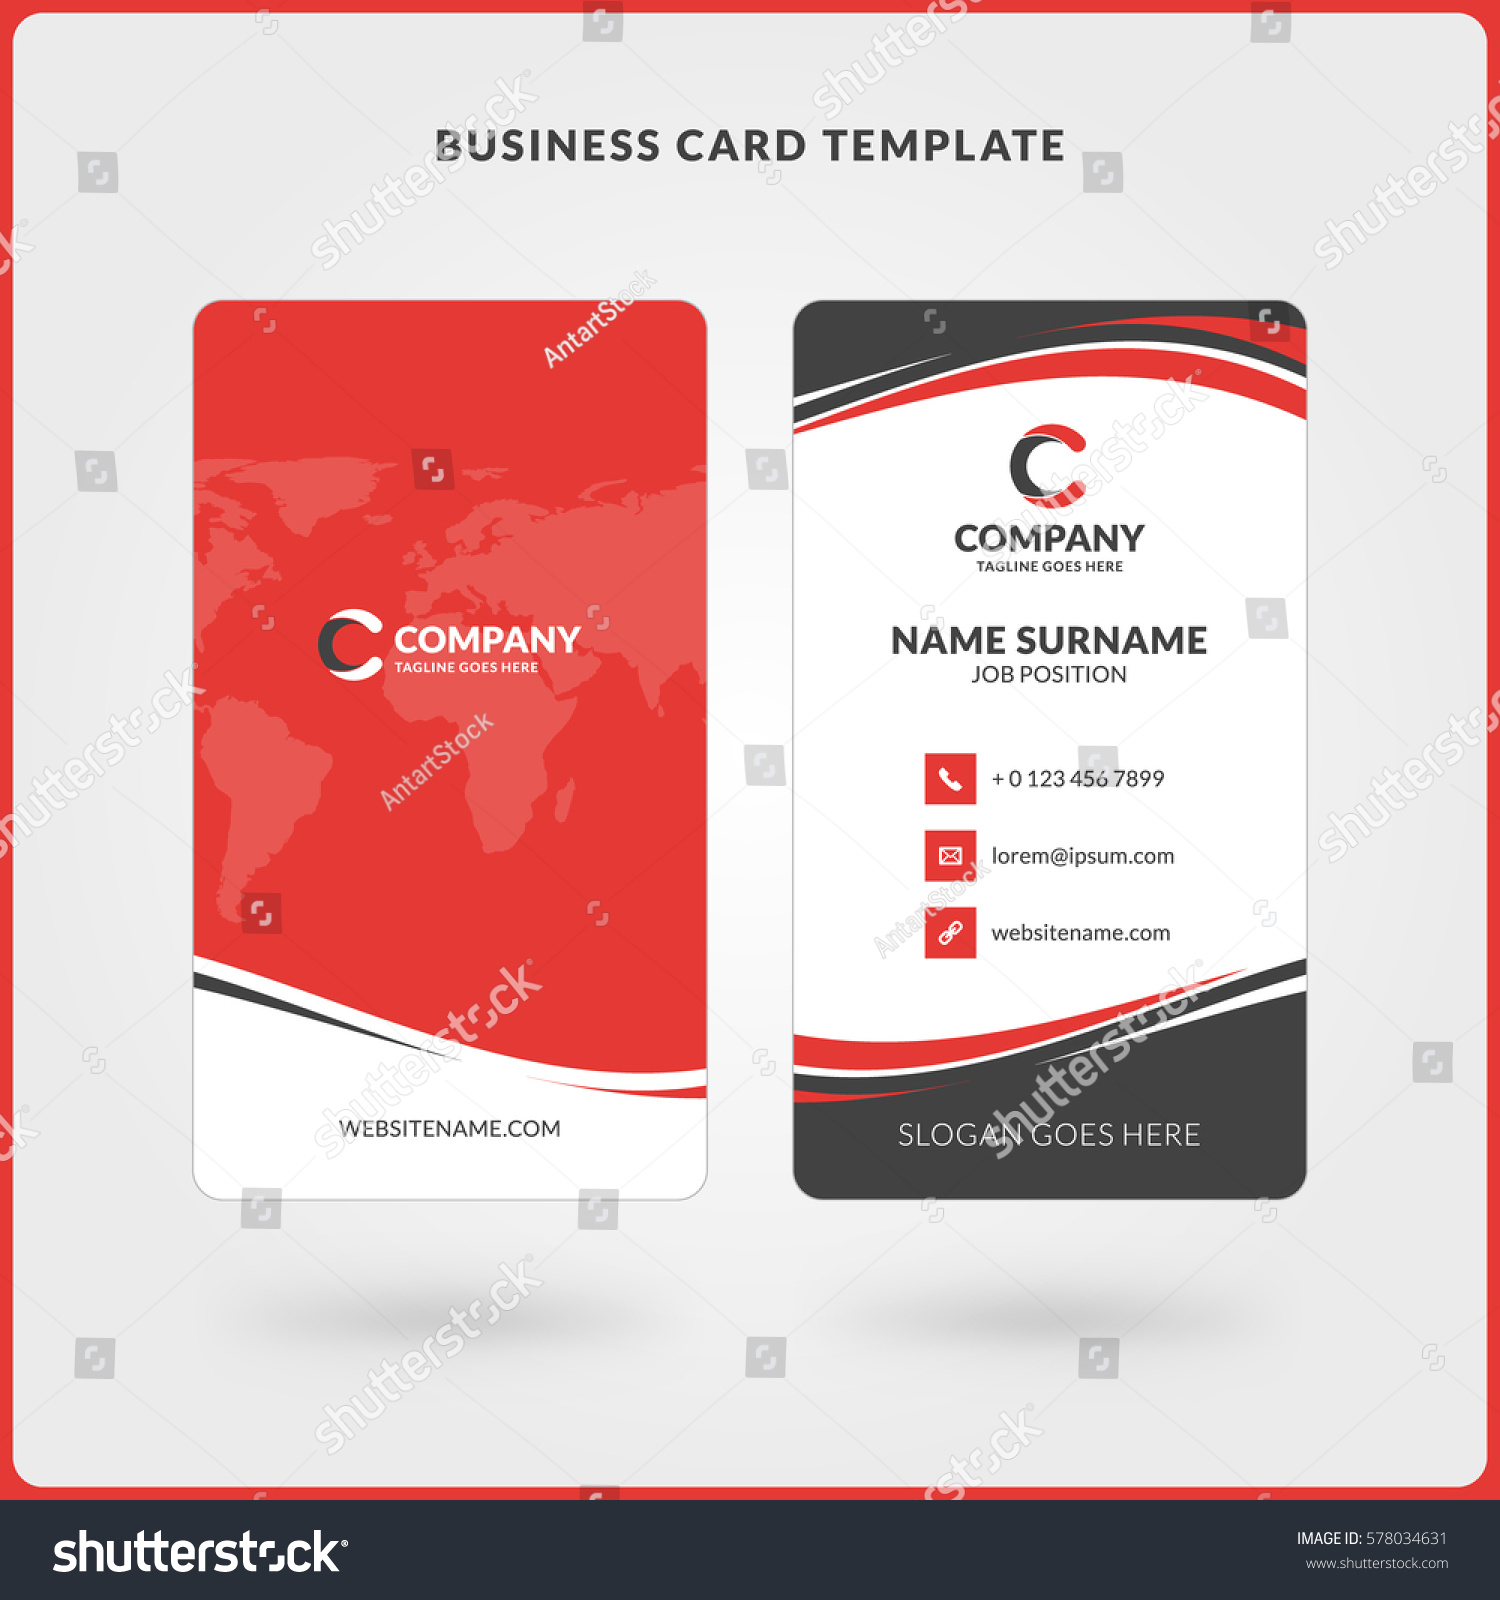 Vertical Doublesided Business Card Template Red Stock Vector - Double sided business card template